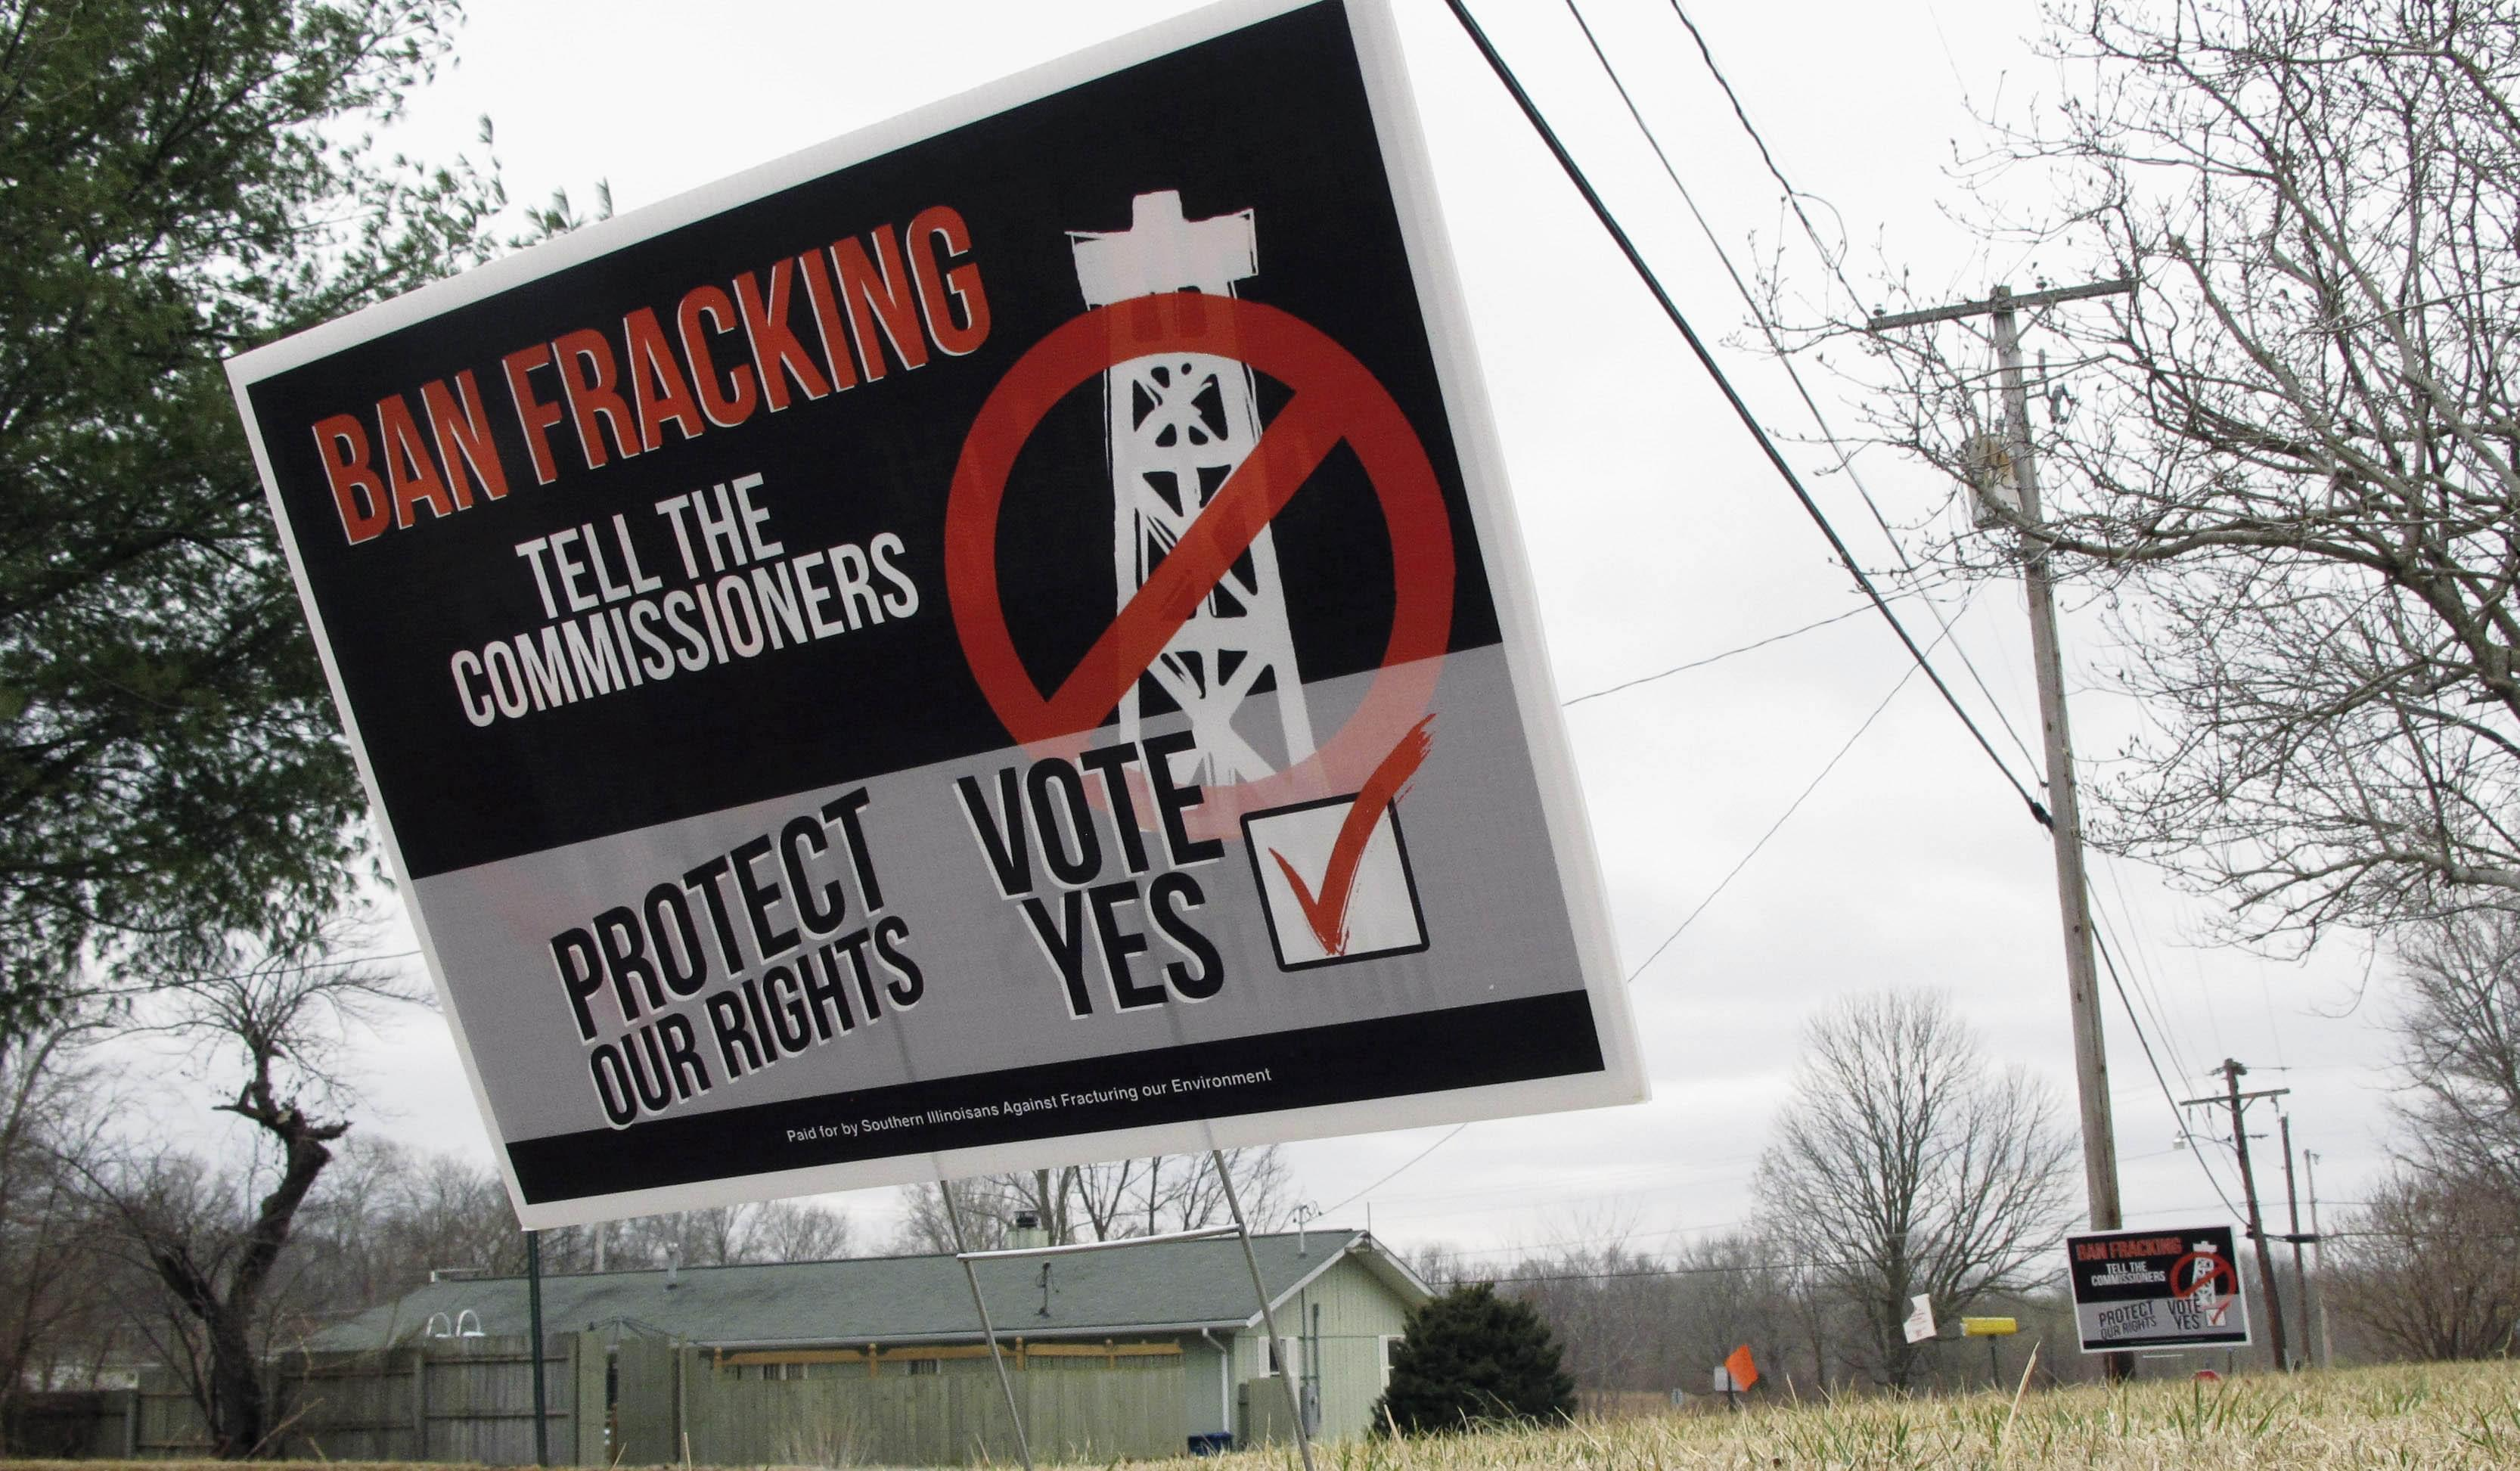 A sign near the Johnson County courthouse urges county voters to defeat a referendum on fracking.